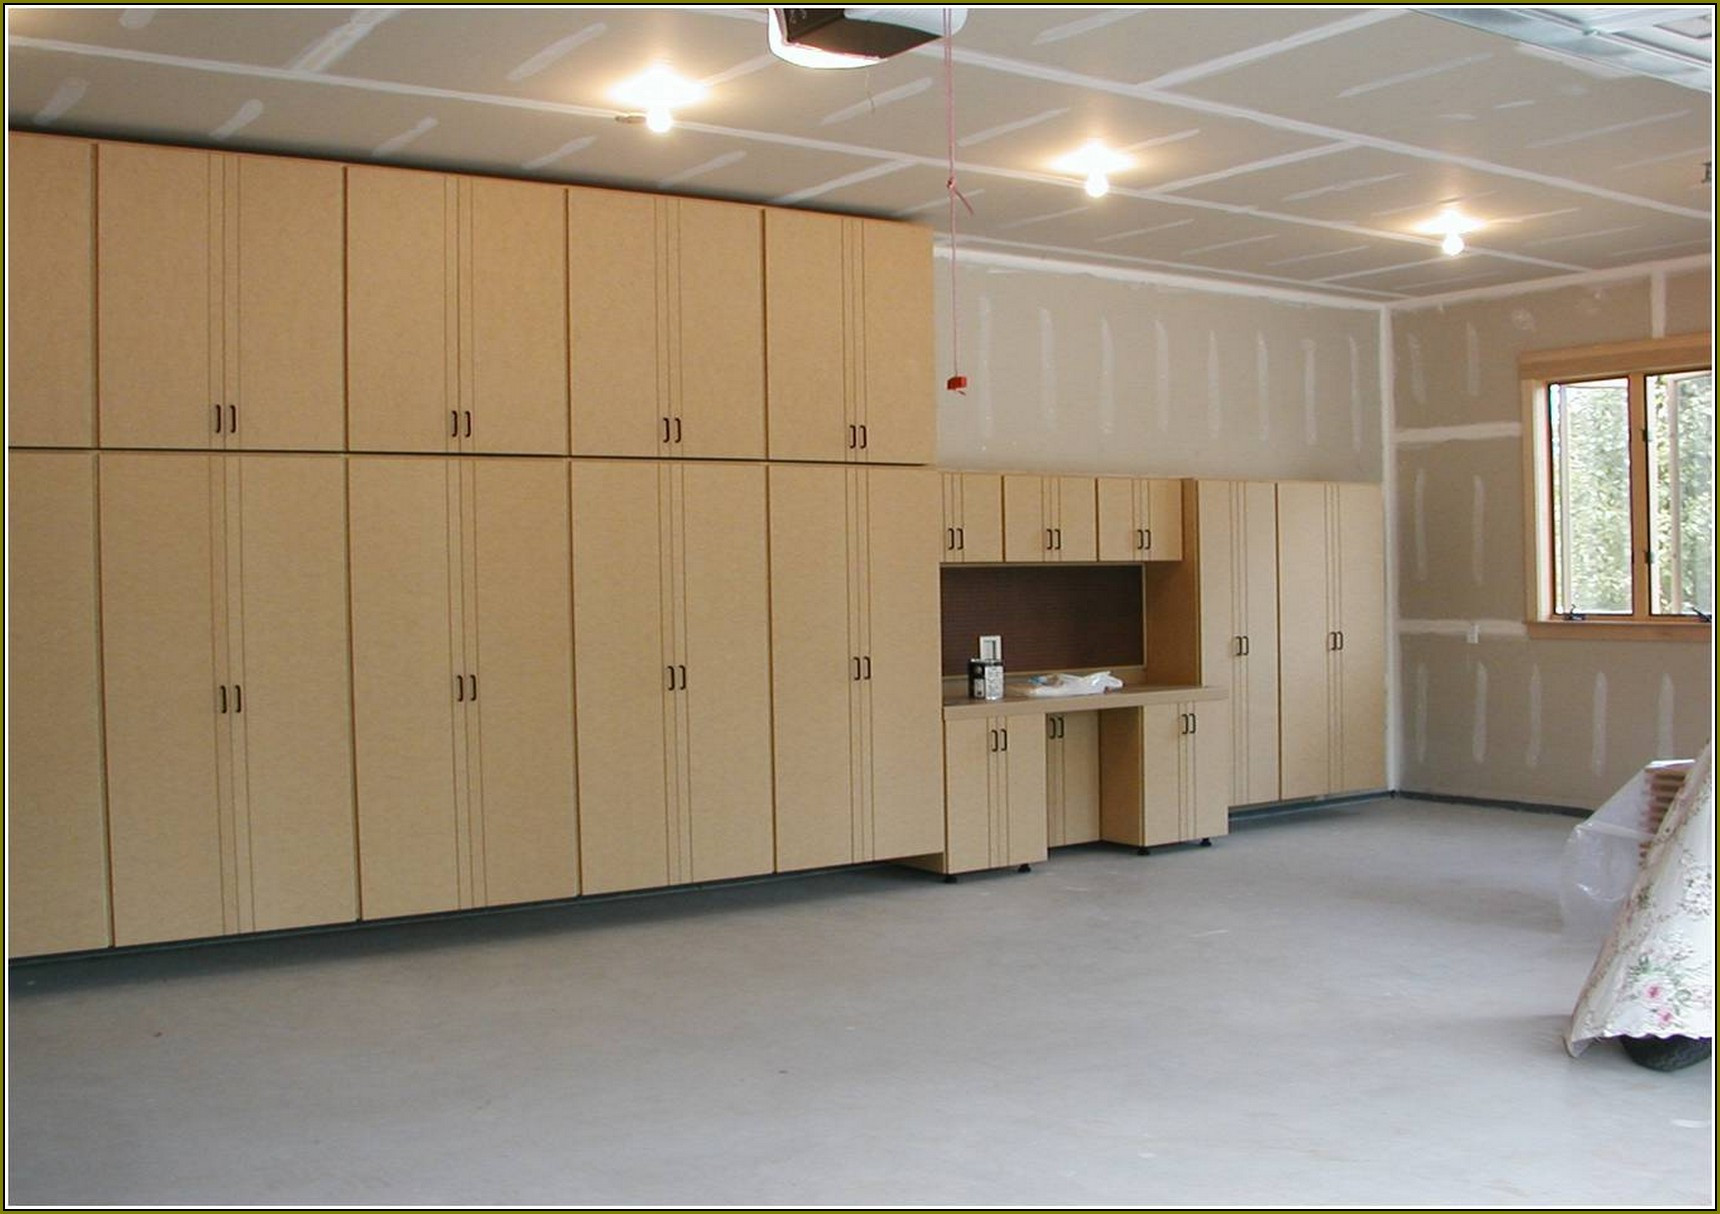 Best ideas about DIY Shop Cabinets . Save or Pin Diy Garage Cabinets To Make Your Garage Look Cooler Elly Now.